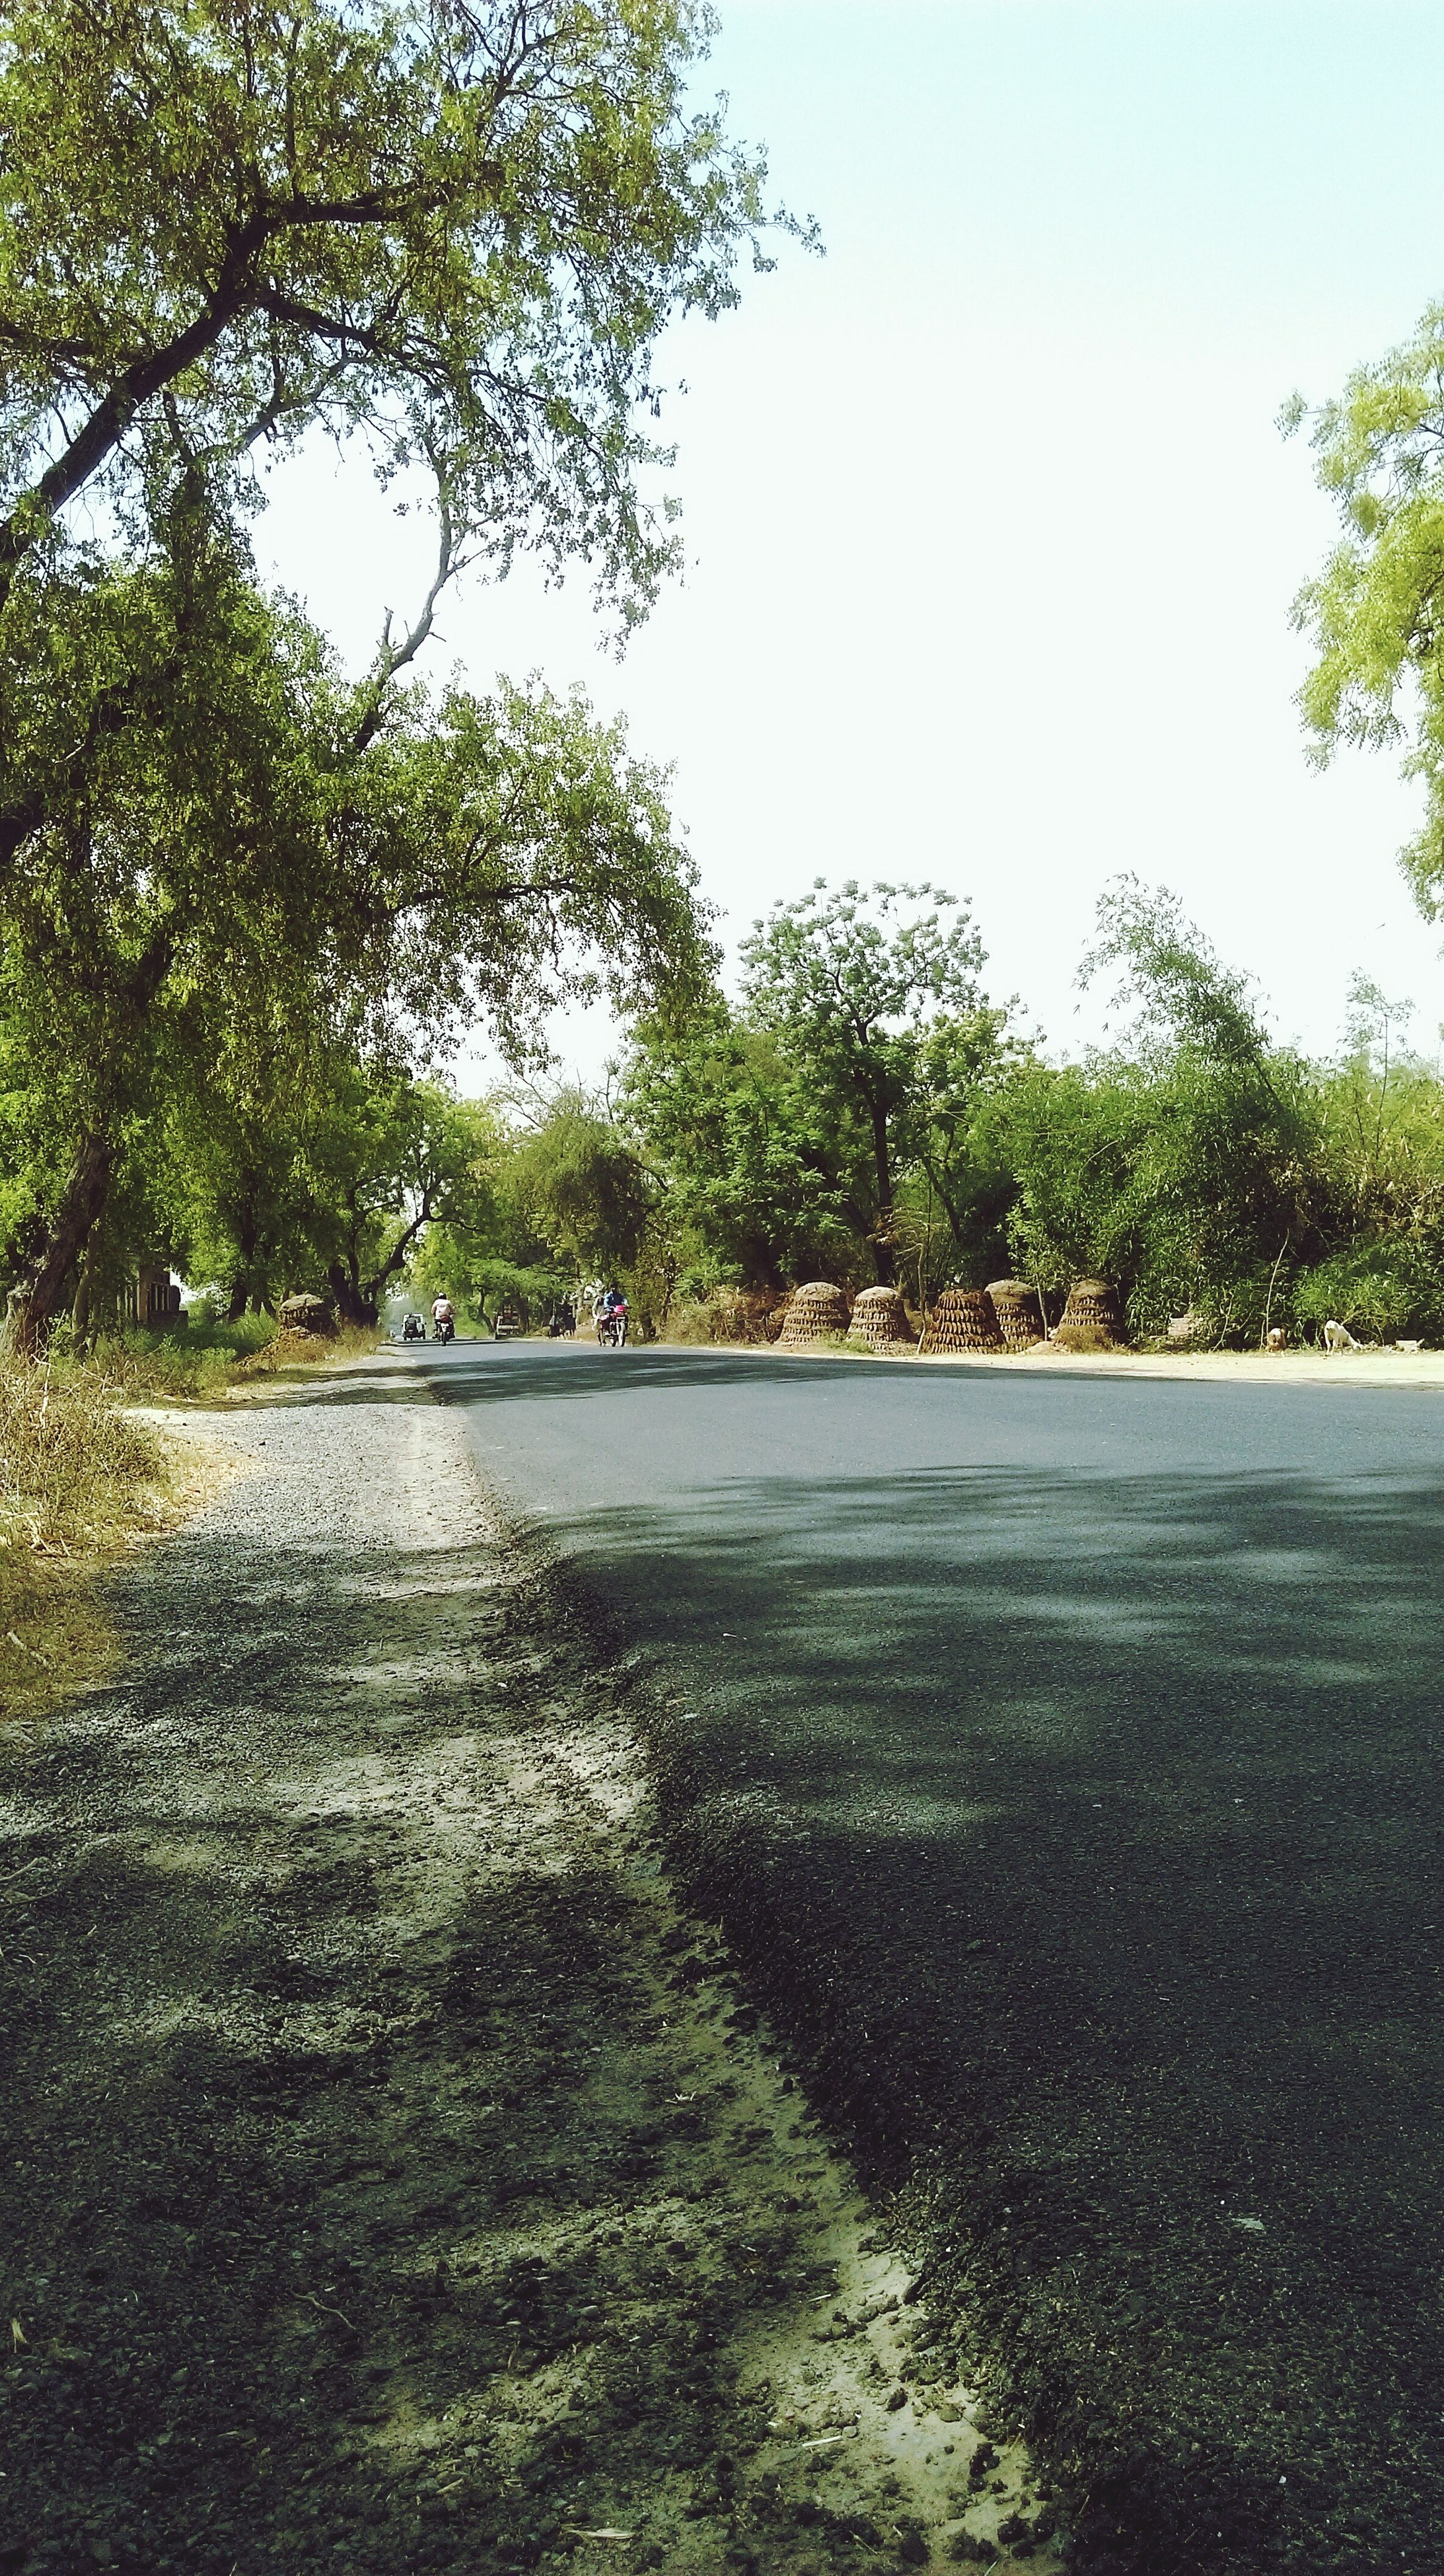 tree, the way forward, road, clear sky, diminishing perspective, tranquility, growth, footpath, vanishing point, transportation, shadow, nature, sunlight, tranquil scene, green color, empty, street, empty road, walkway, day